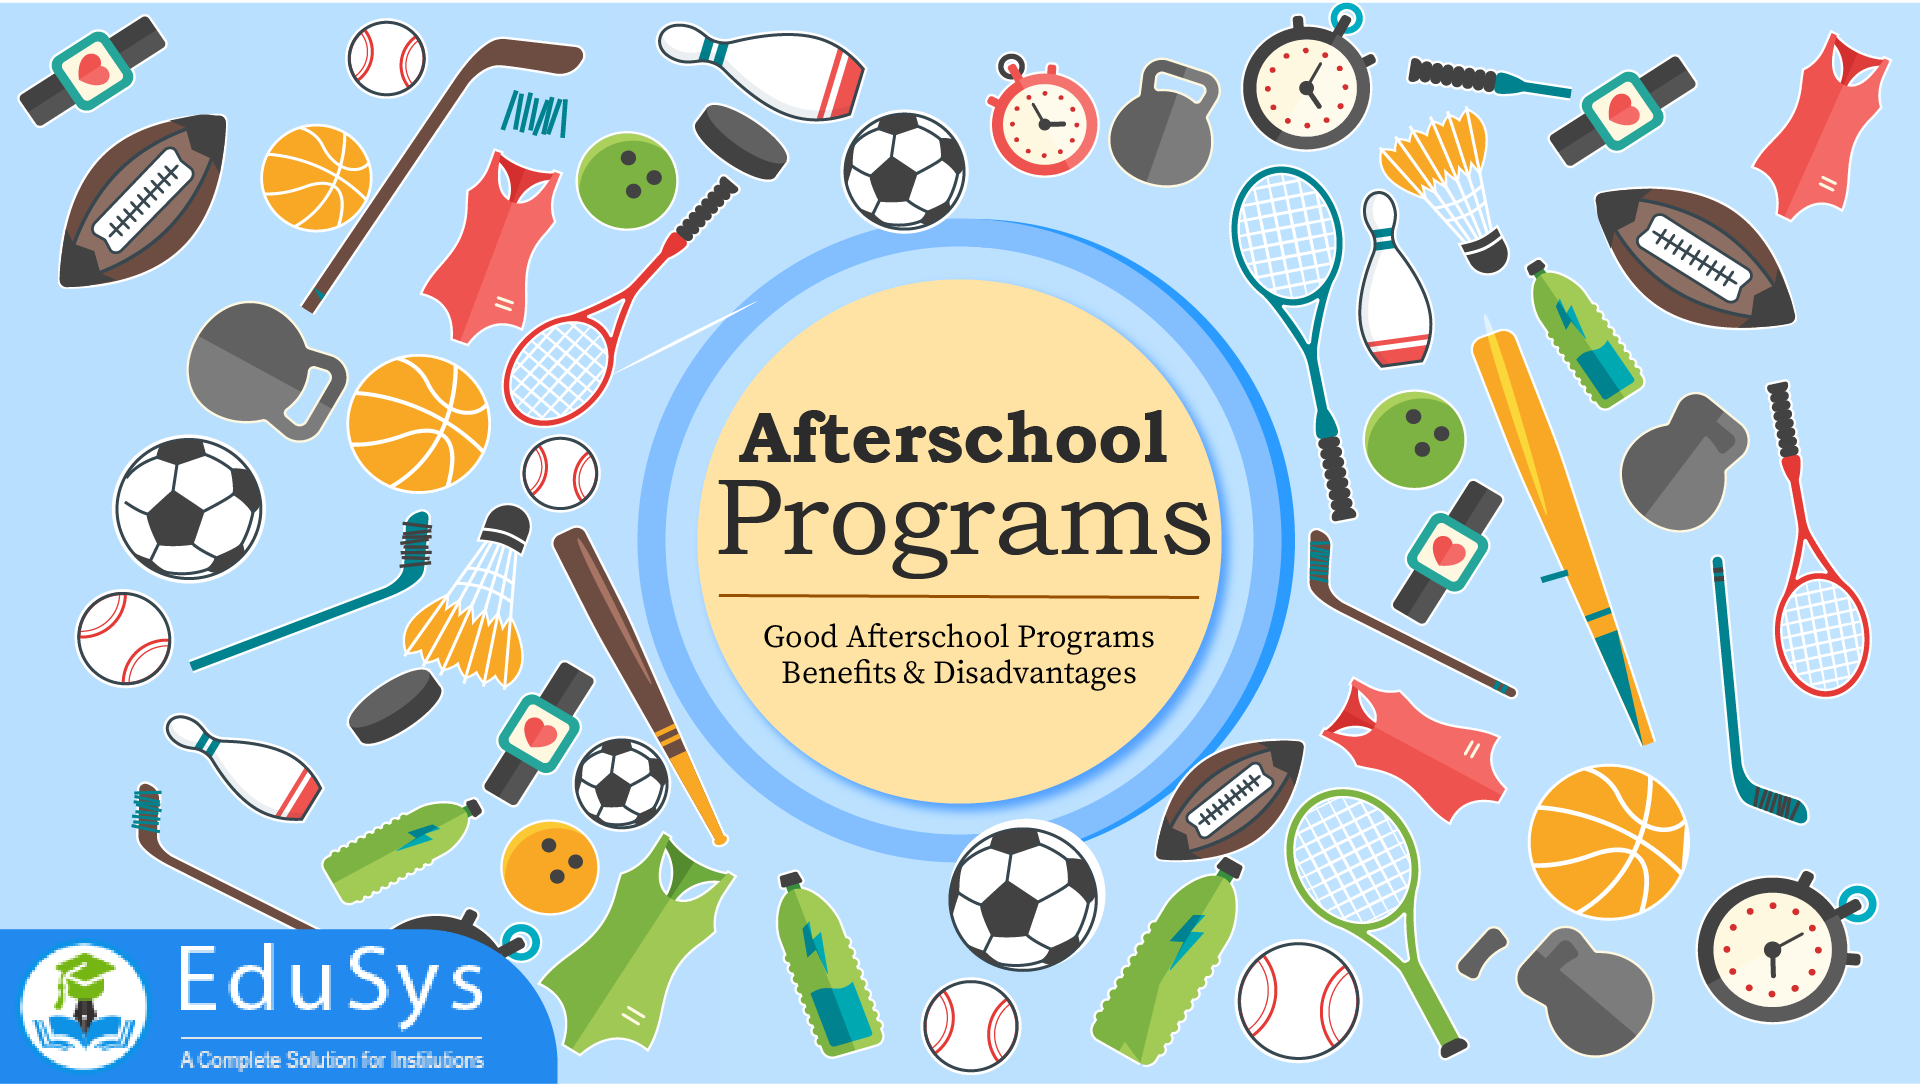 What are After-school programs? Benefits & Disadvantages